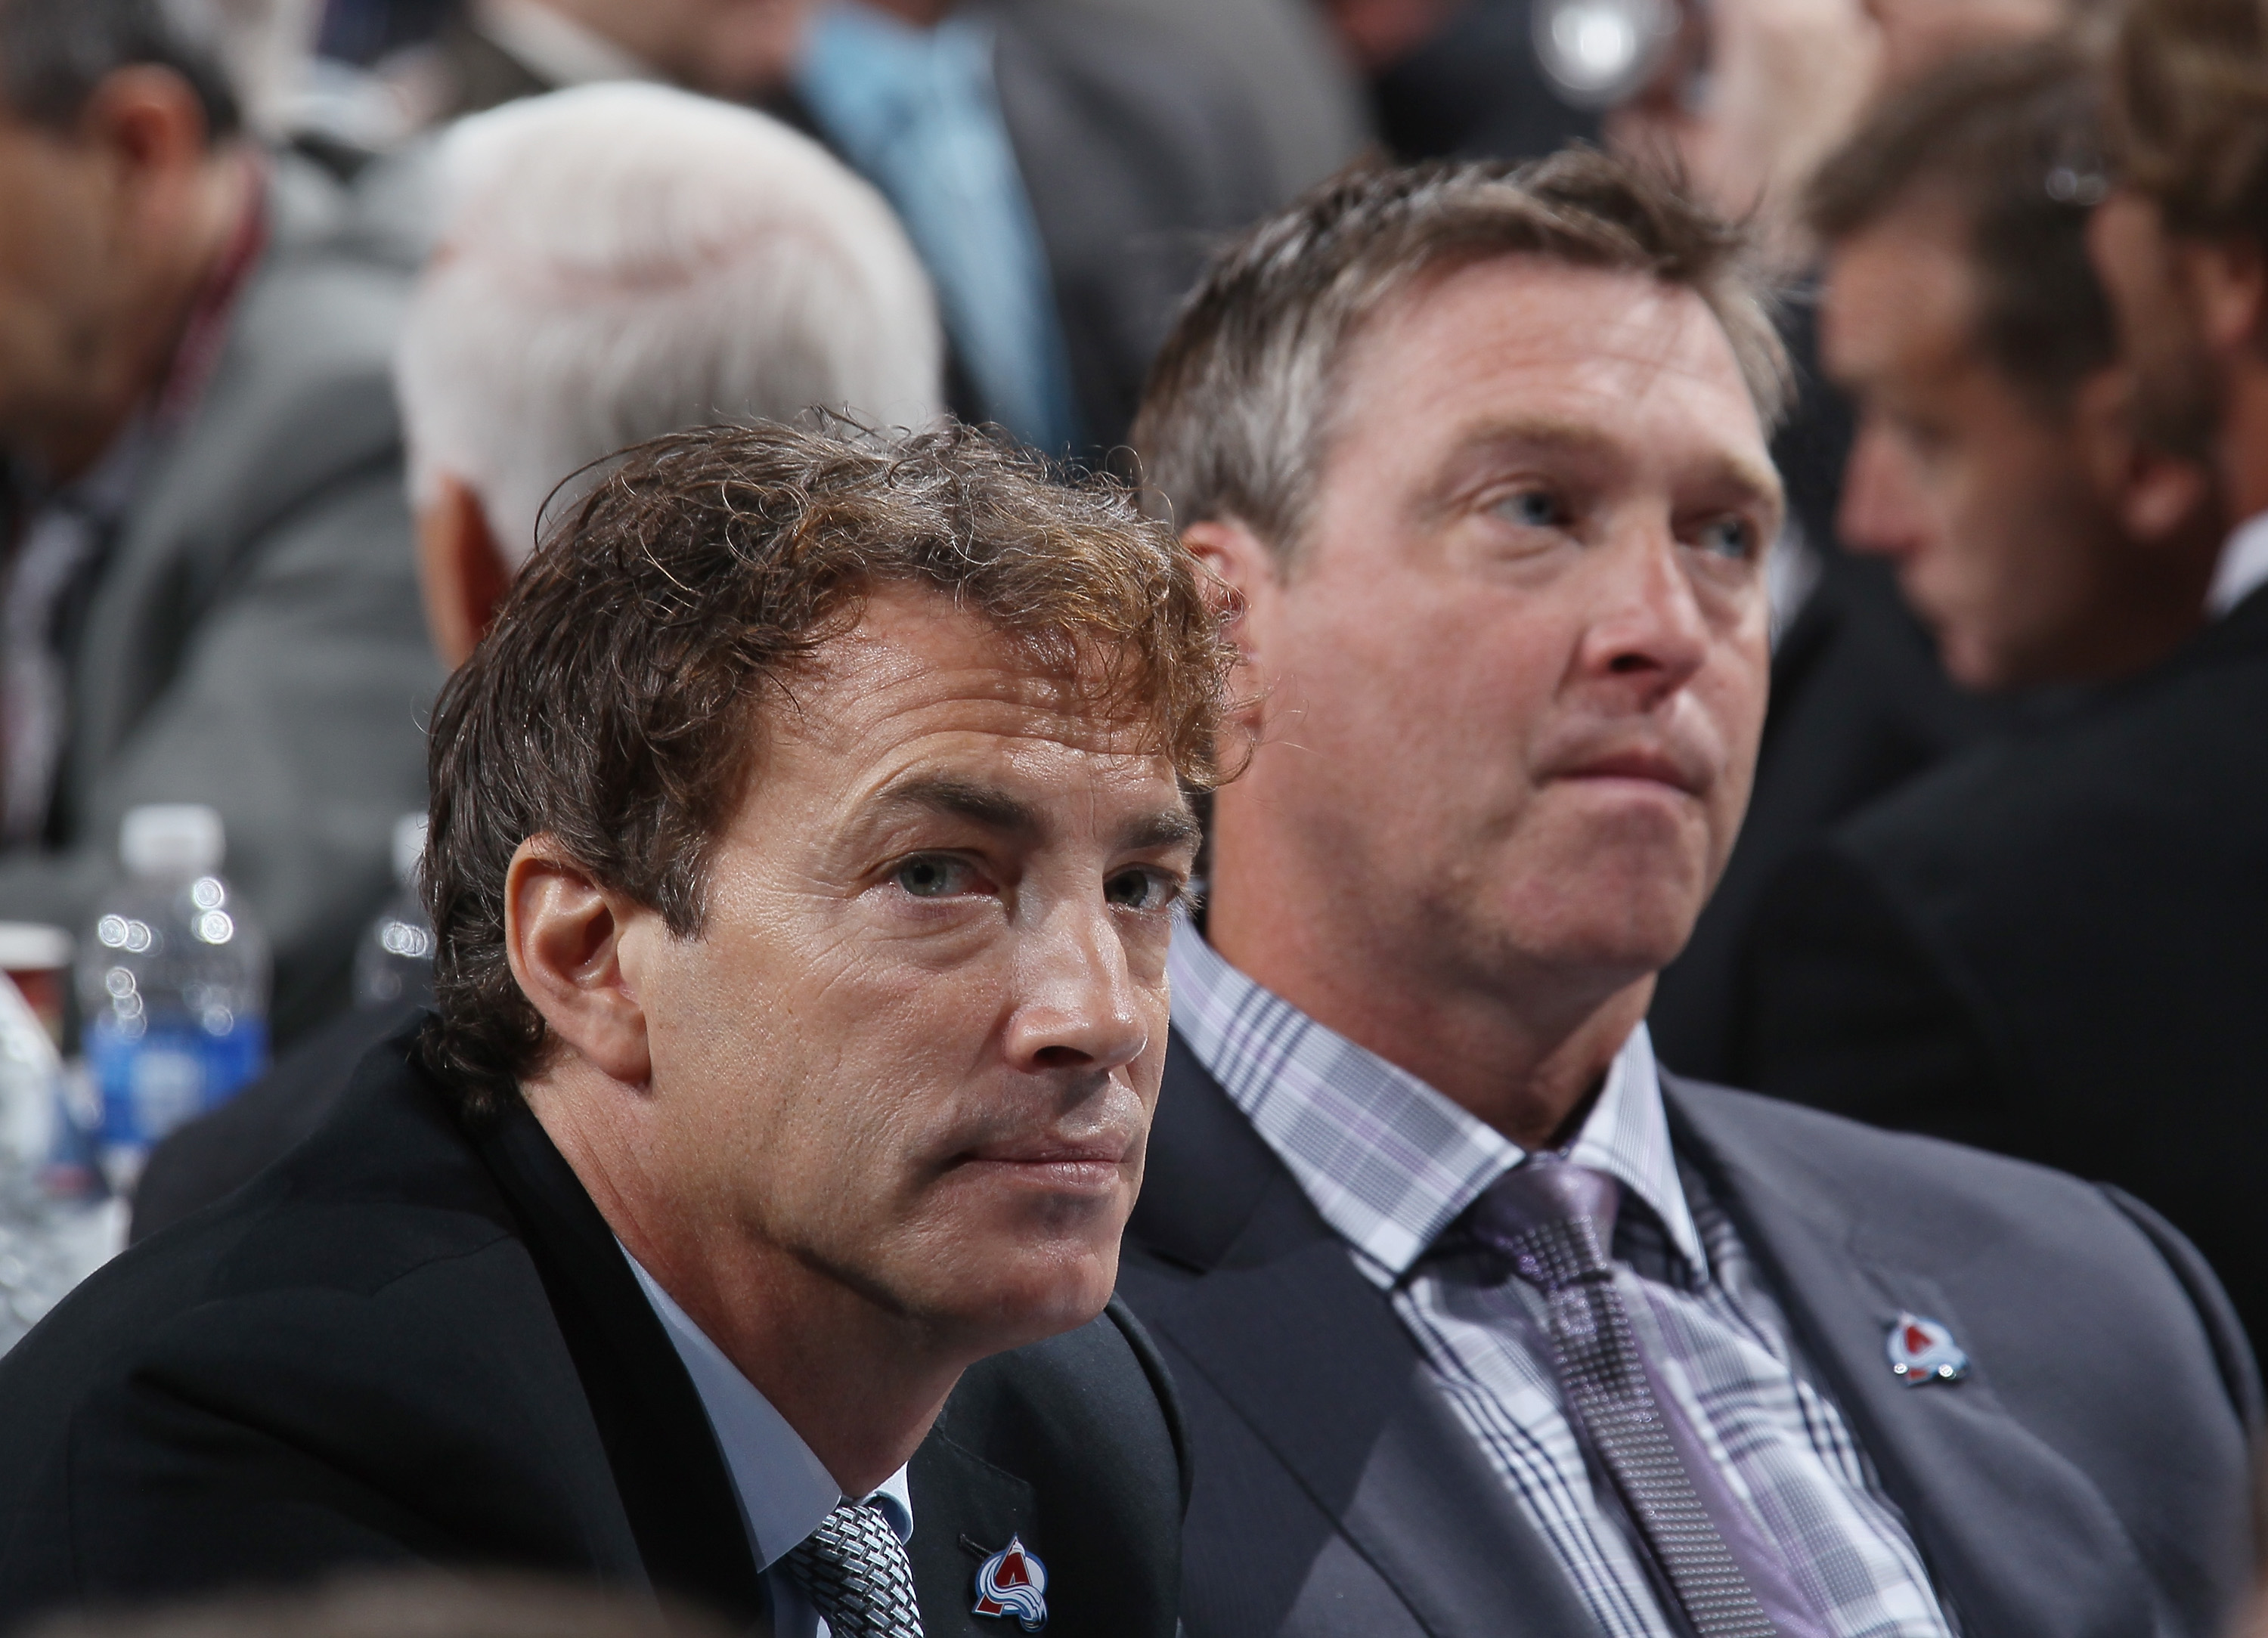 NEWARK, NJ - JUNE 30: Joe Sakic and Patrick Roy of the Colorado Avalanche attend the 2013 NHL Draft at the Prudential Center on June 30, 2013 in Newark, New Jersey. (Photo by Bruce Bennett/Getty Images)